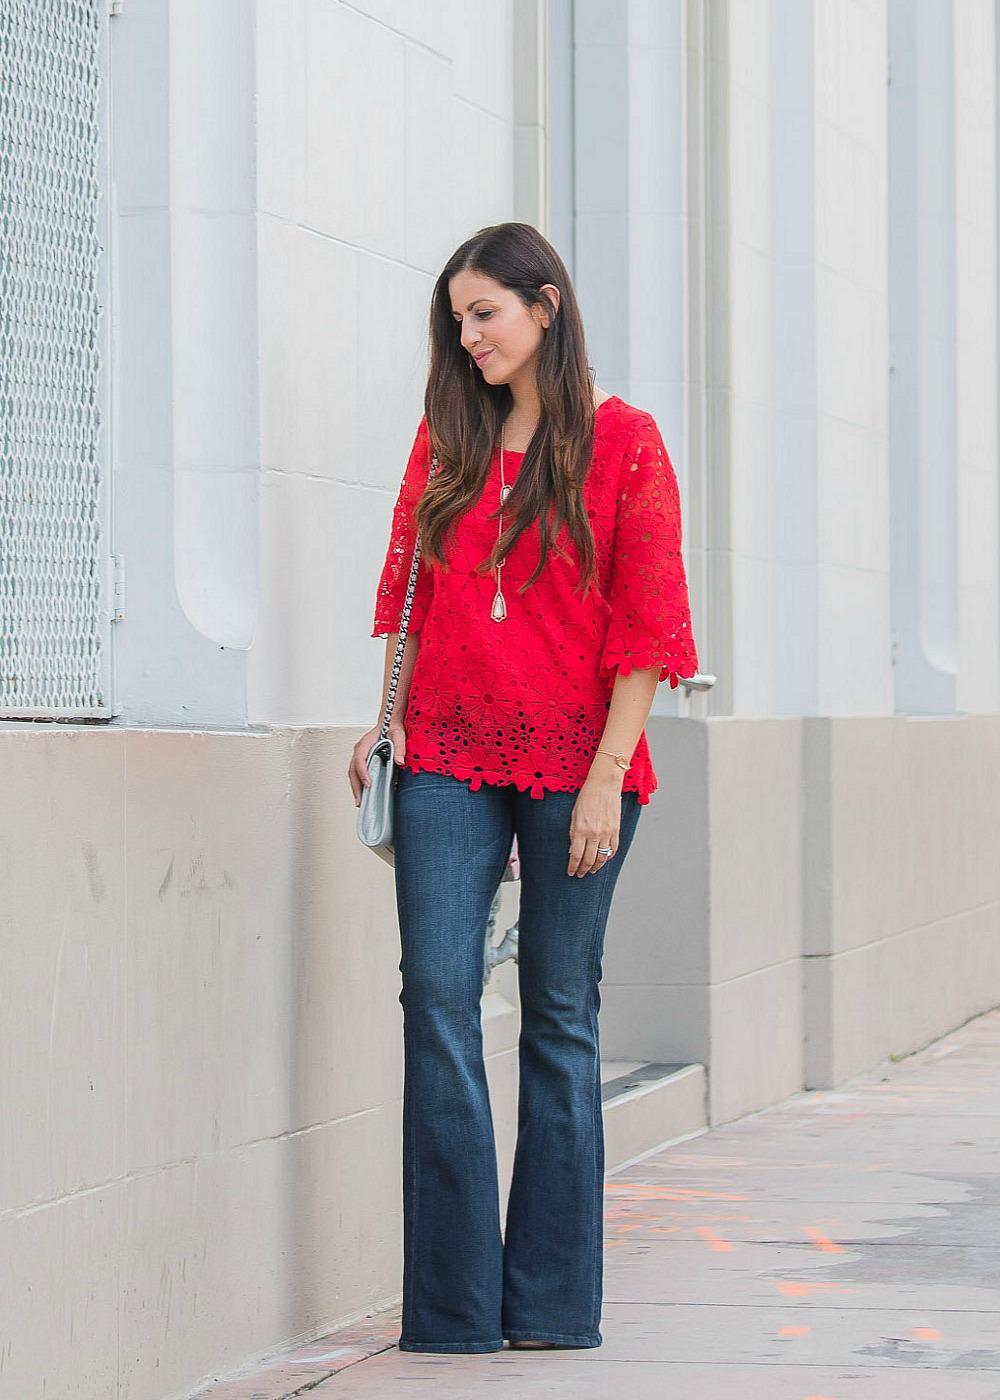 bell bottoms, flared denim, 70's fashion style